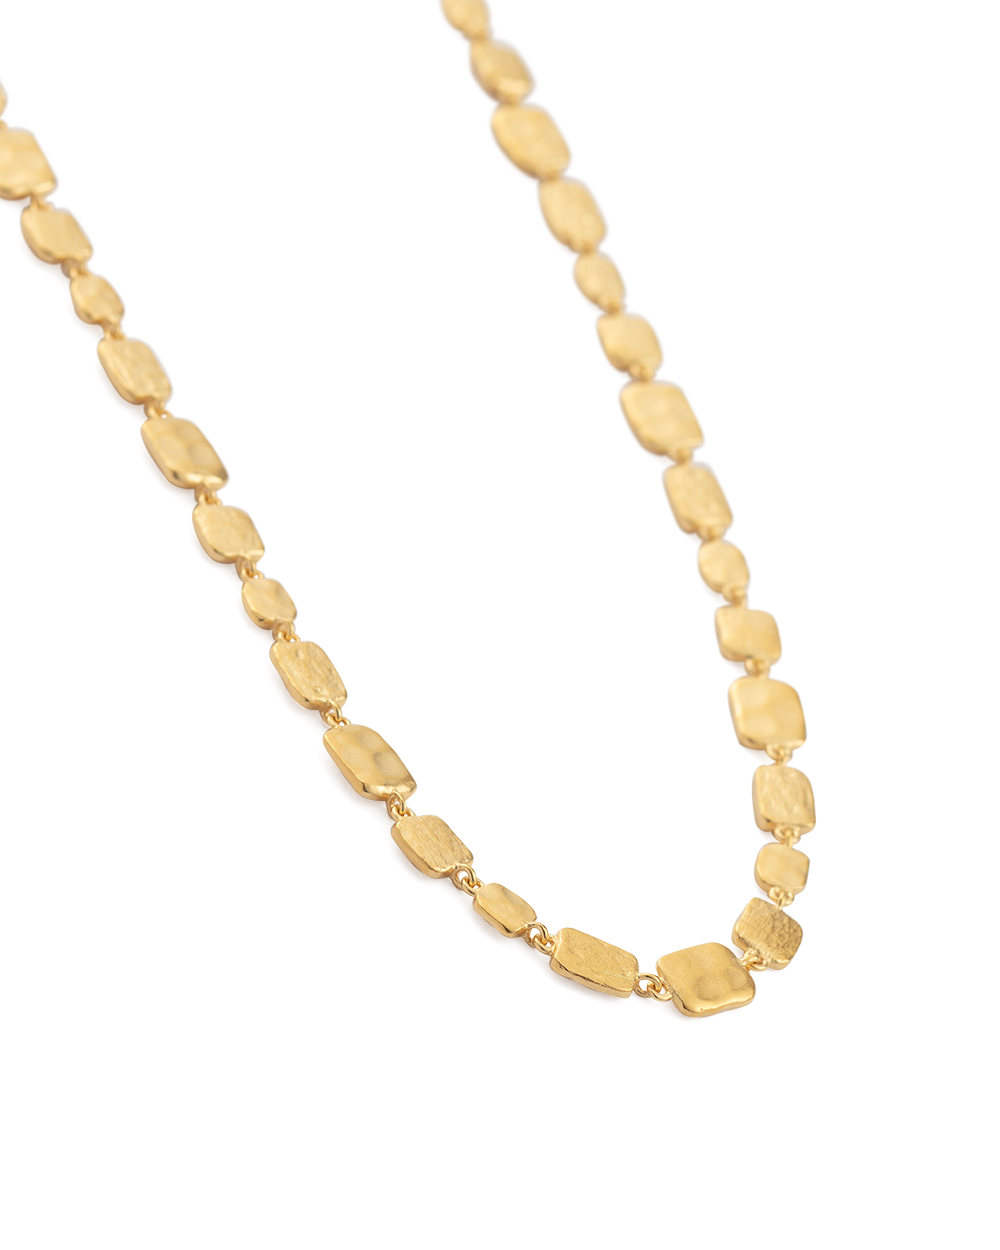 CASCADE NECKLACE (18K-GOLD-PLATED) - SIDE